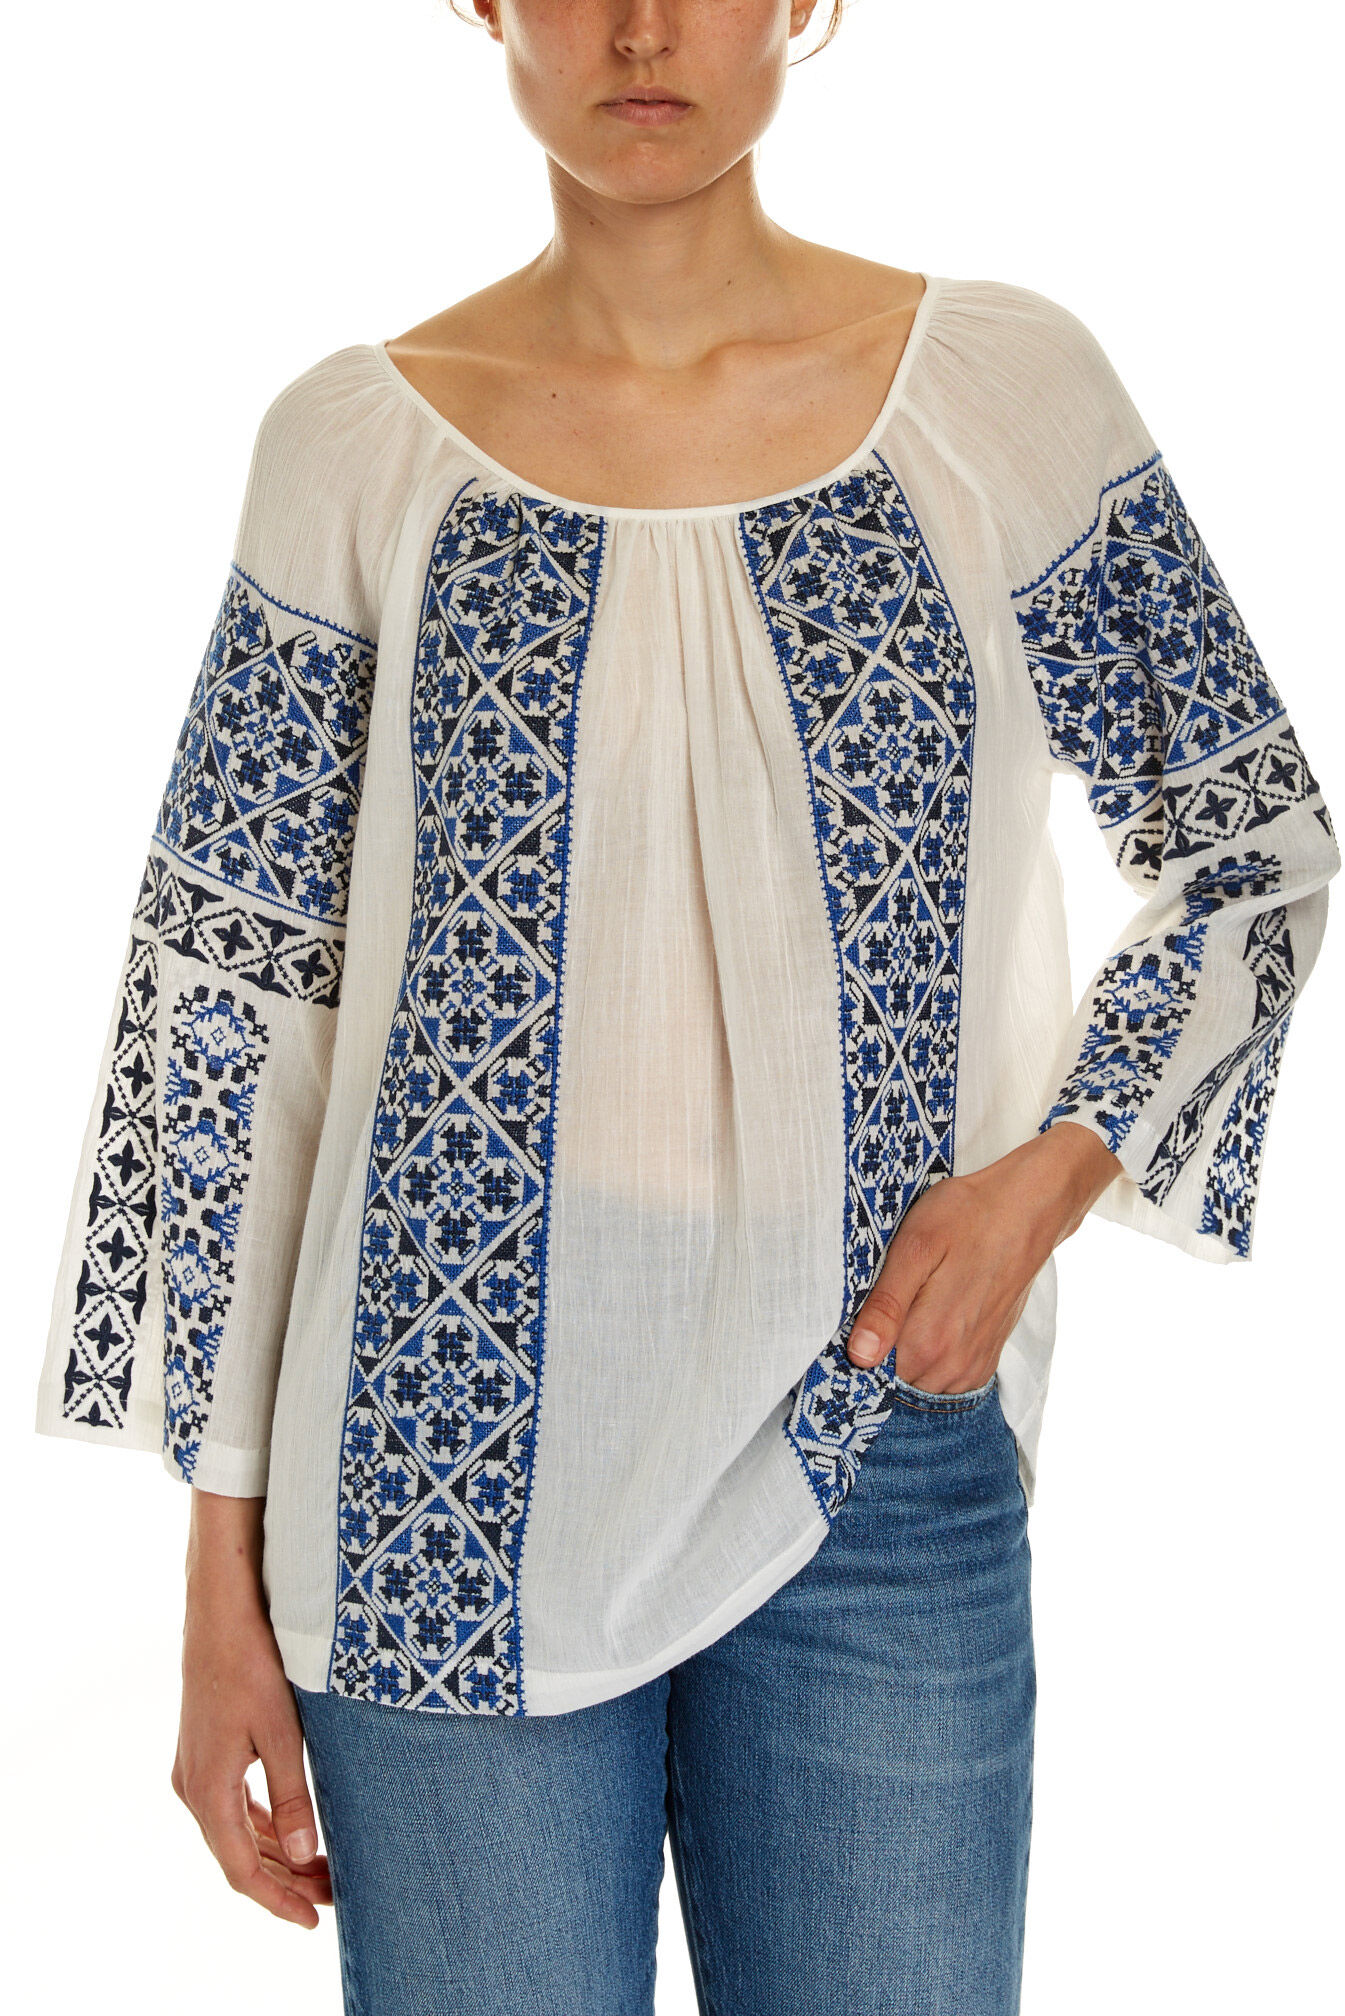 Take it to the Top - %color %size Tops for Women